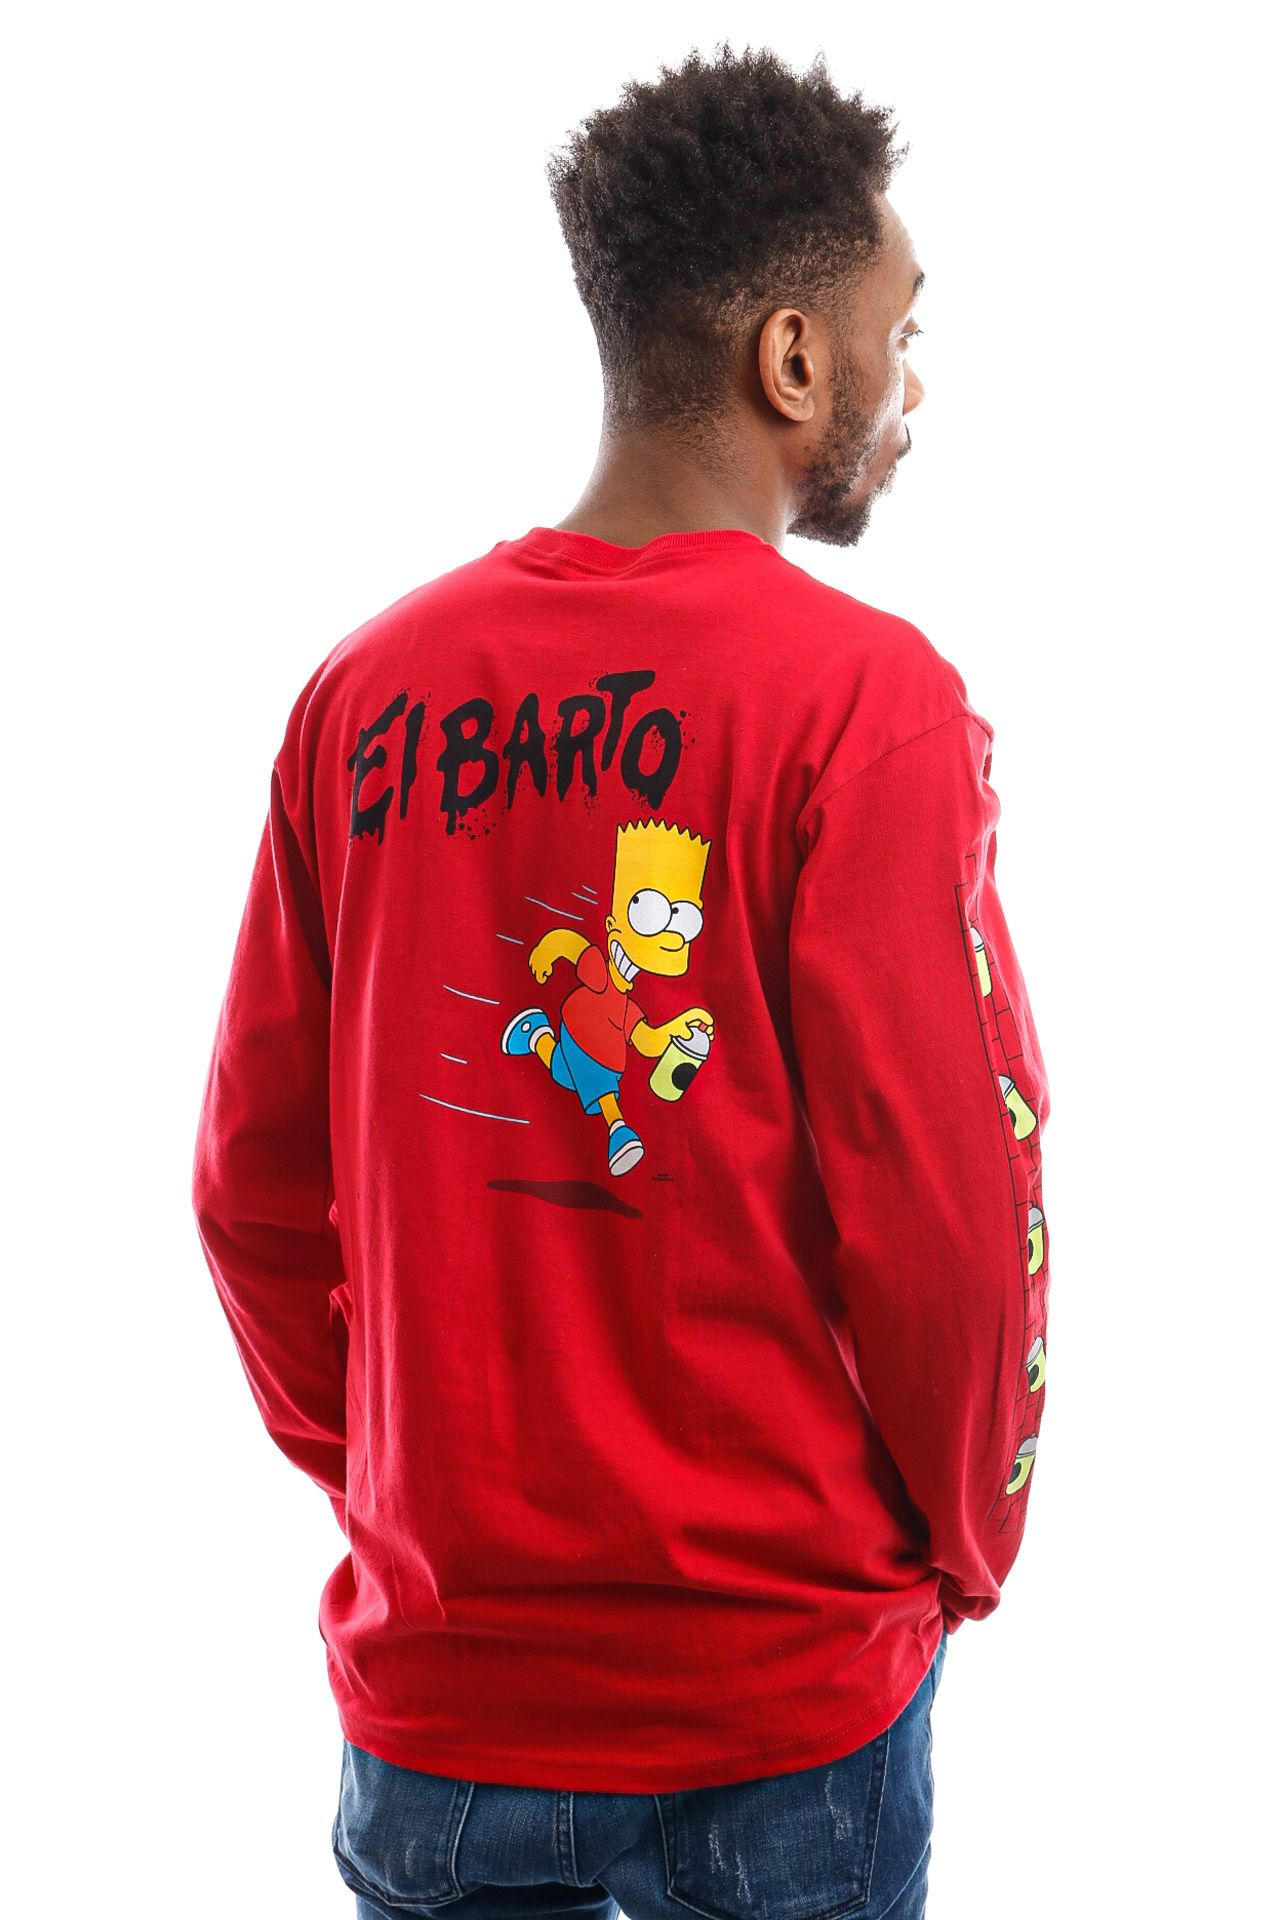 Afbeelding van Vans x The Simpsons Long Sleeve Mn Vans X El Barto ls Deep Red/True W VN0A4RTN17A